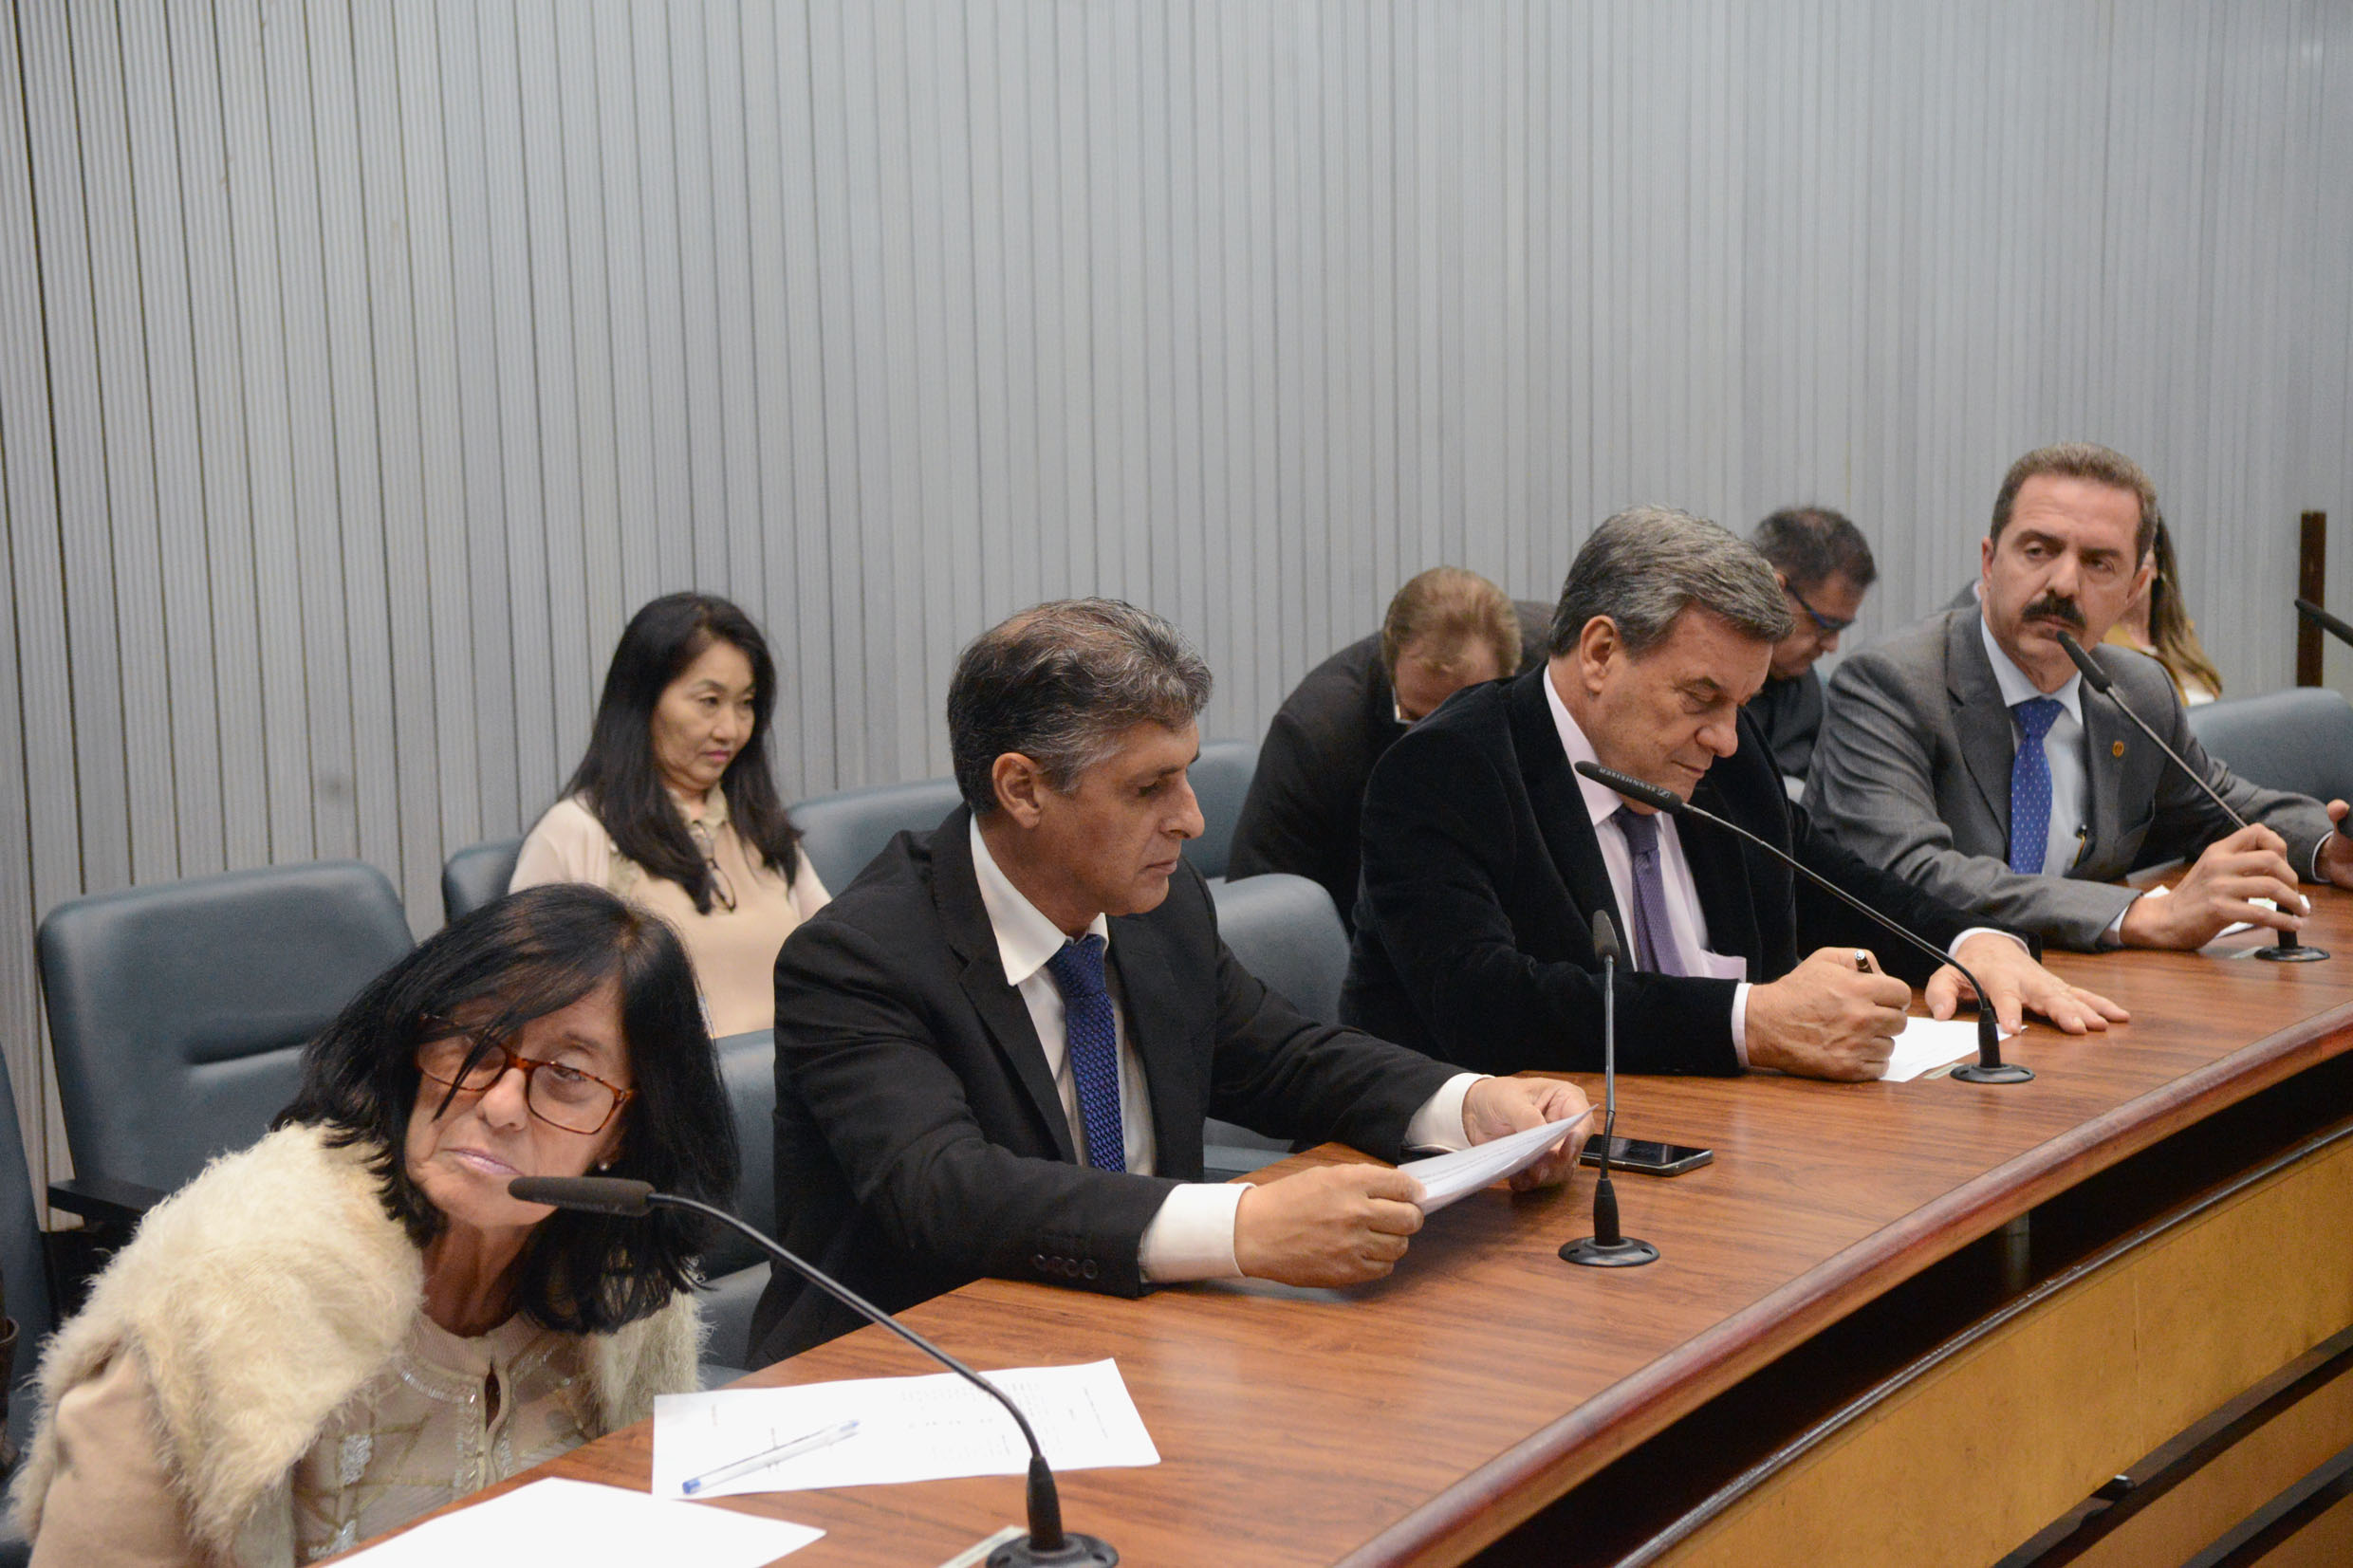 Parlamentares na comissão<a style='float:right' href='https://www3.al.sp.gov.br/repositorio/noticia/N-11-2018/fg227241.jpg' target=_blank><img src='/_img/material-file-download-white.png' width='14px' alt='Clique para baixar a imagem'></a>